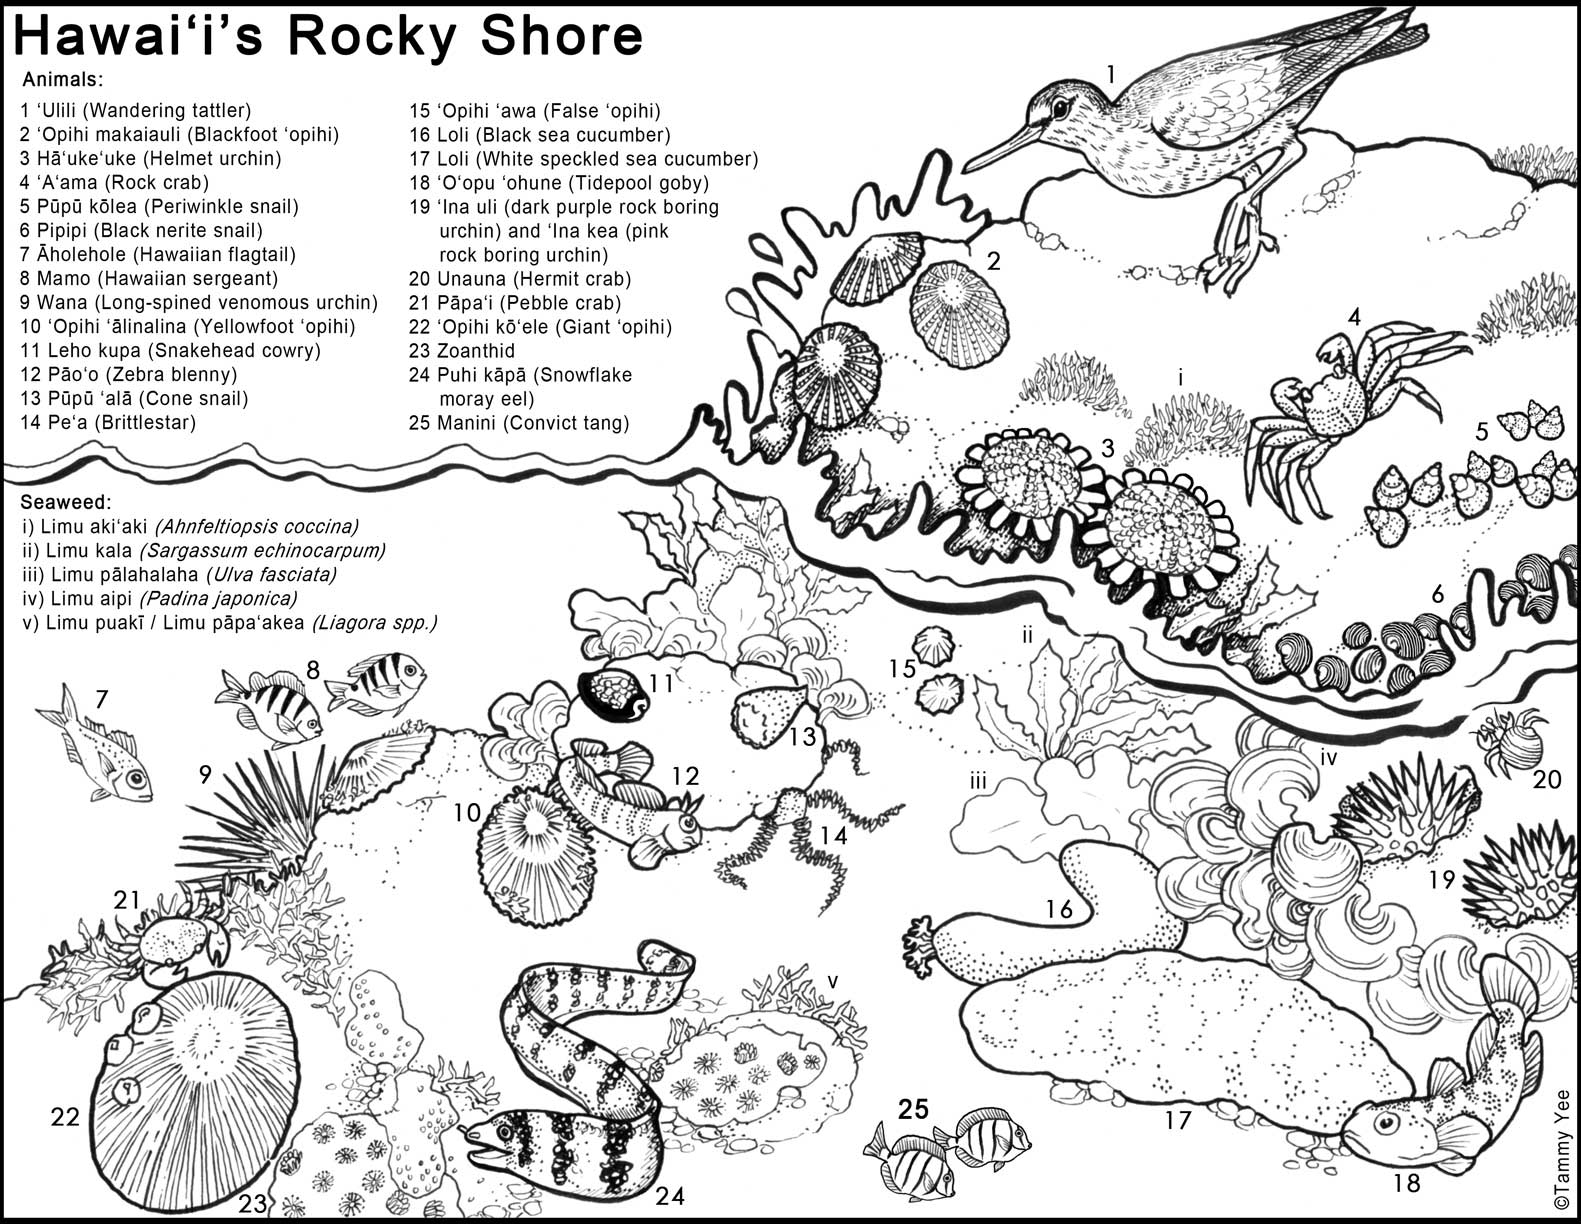 Similiar Ocean Zones With Creatures Coloring Pages Keywords.